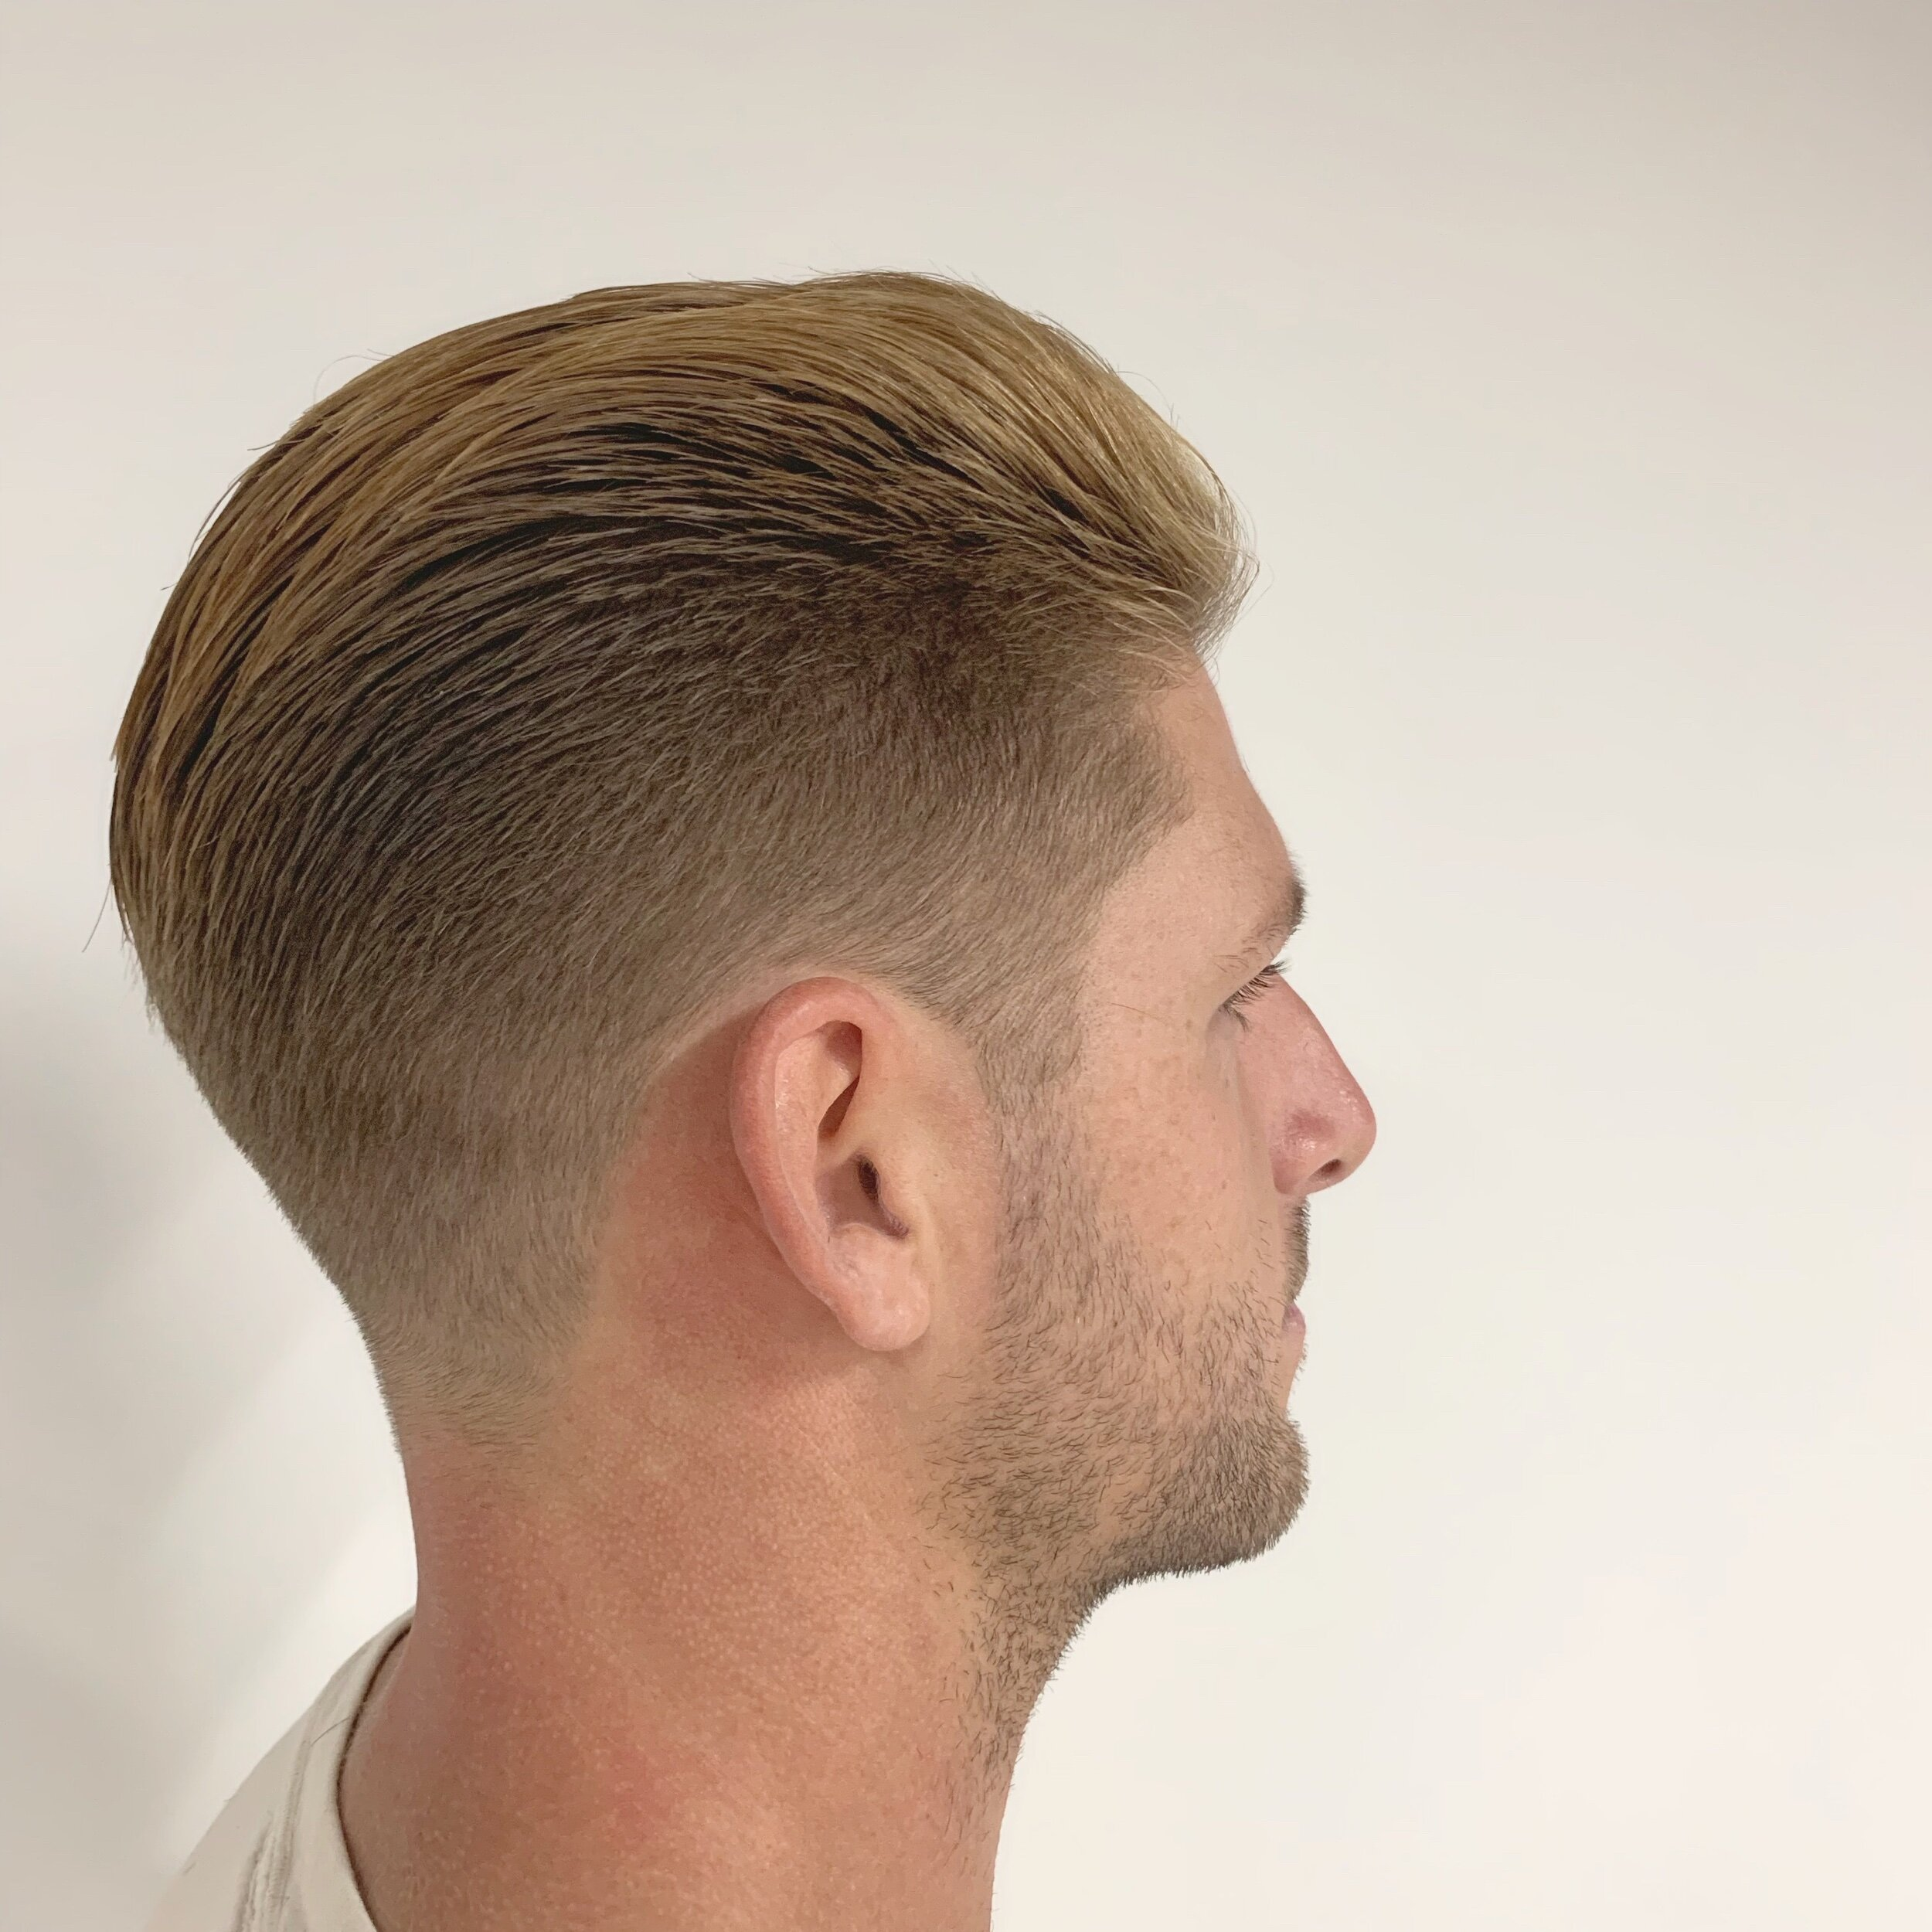 - Hayden owns the shop and specializes in traditional haircuts